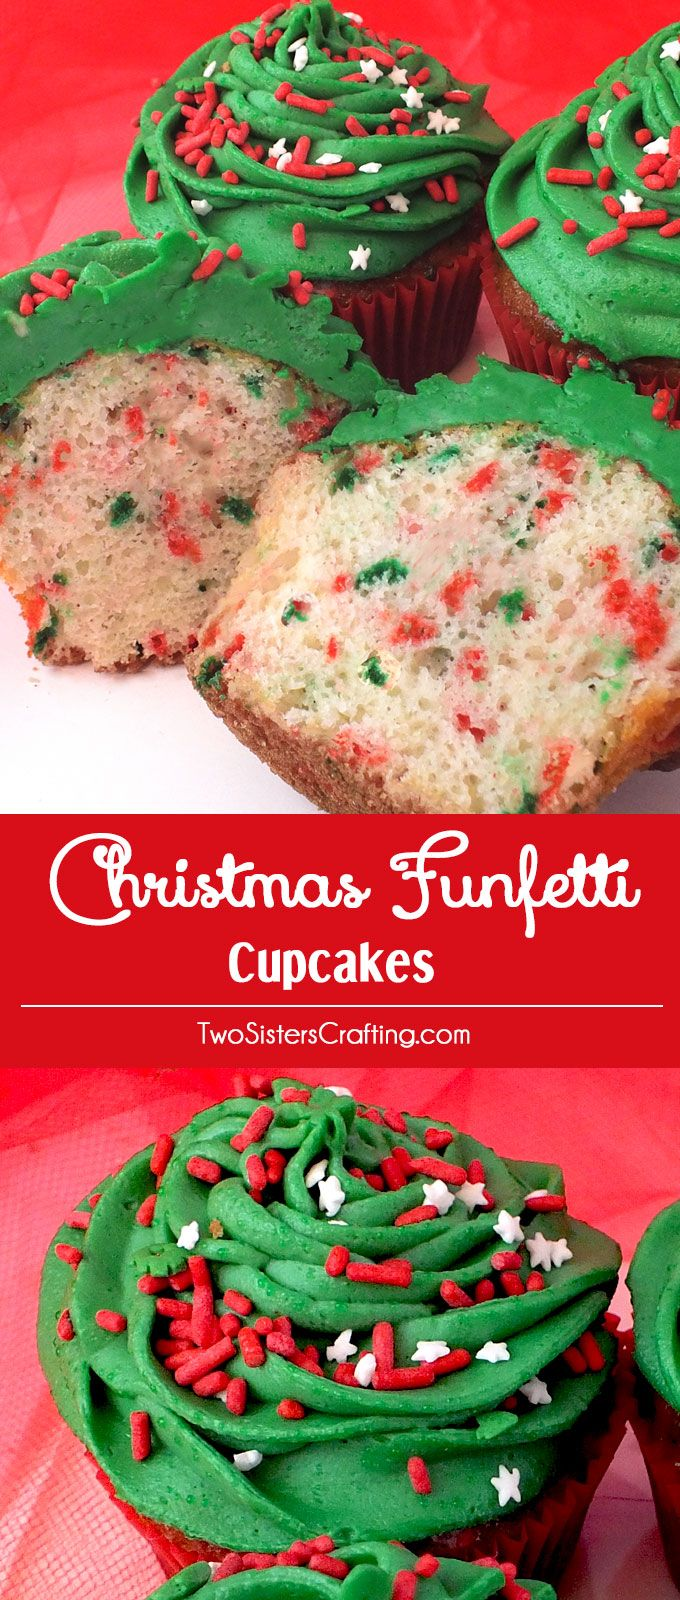 Our colorful Christmas Funfetti Cupcakes will be a festive addition to this year's Christmas Desserts. And the kids in your life will really love these red and green Christmas Cupcakes! Follow us for more fun Christmas Treats.